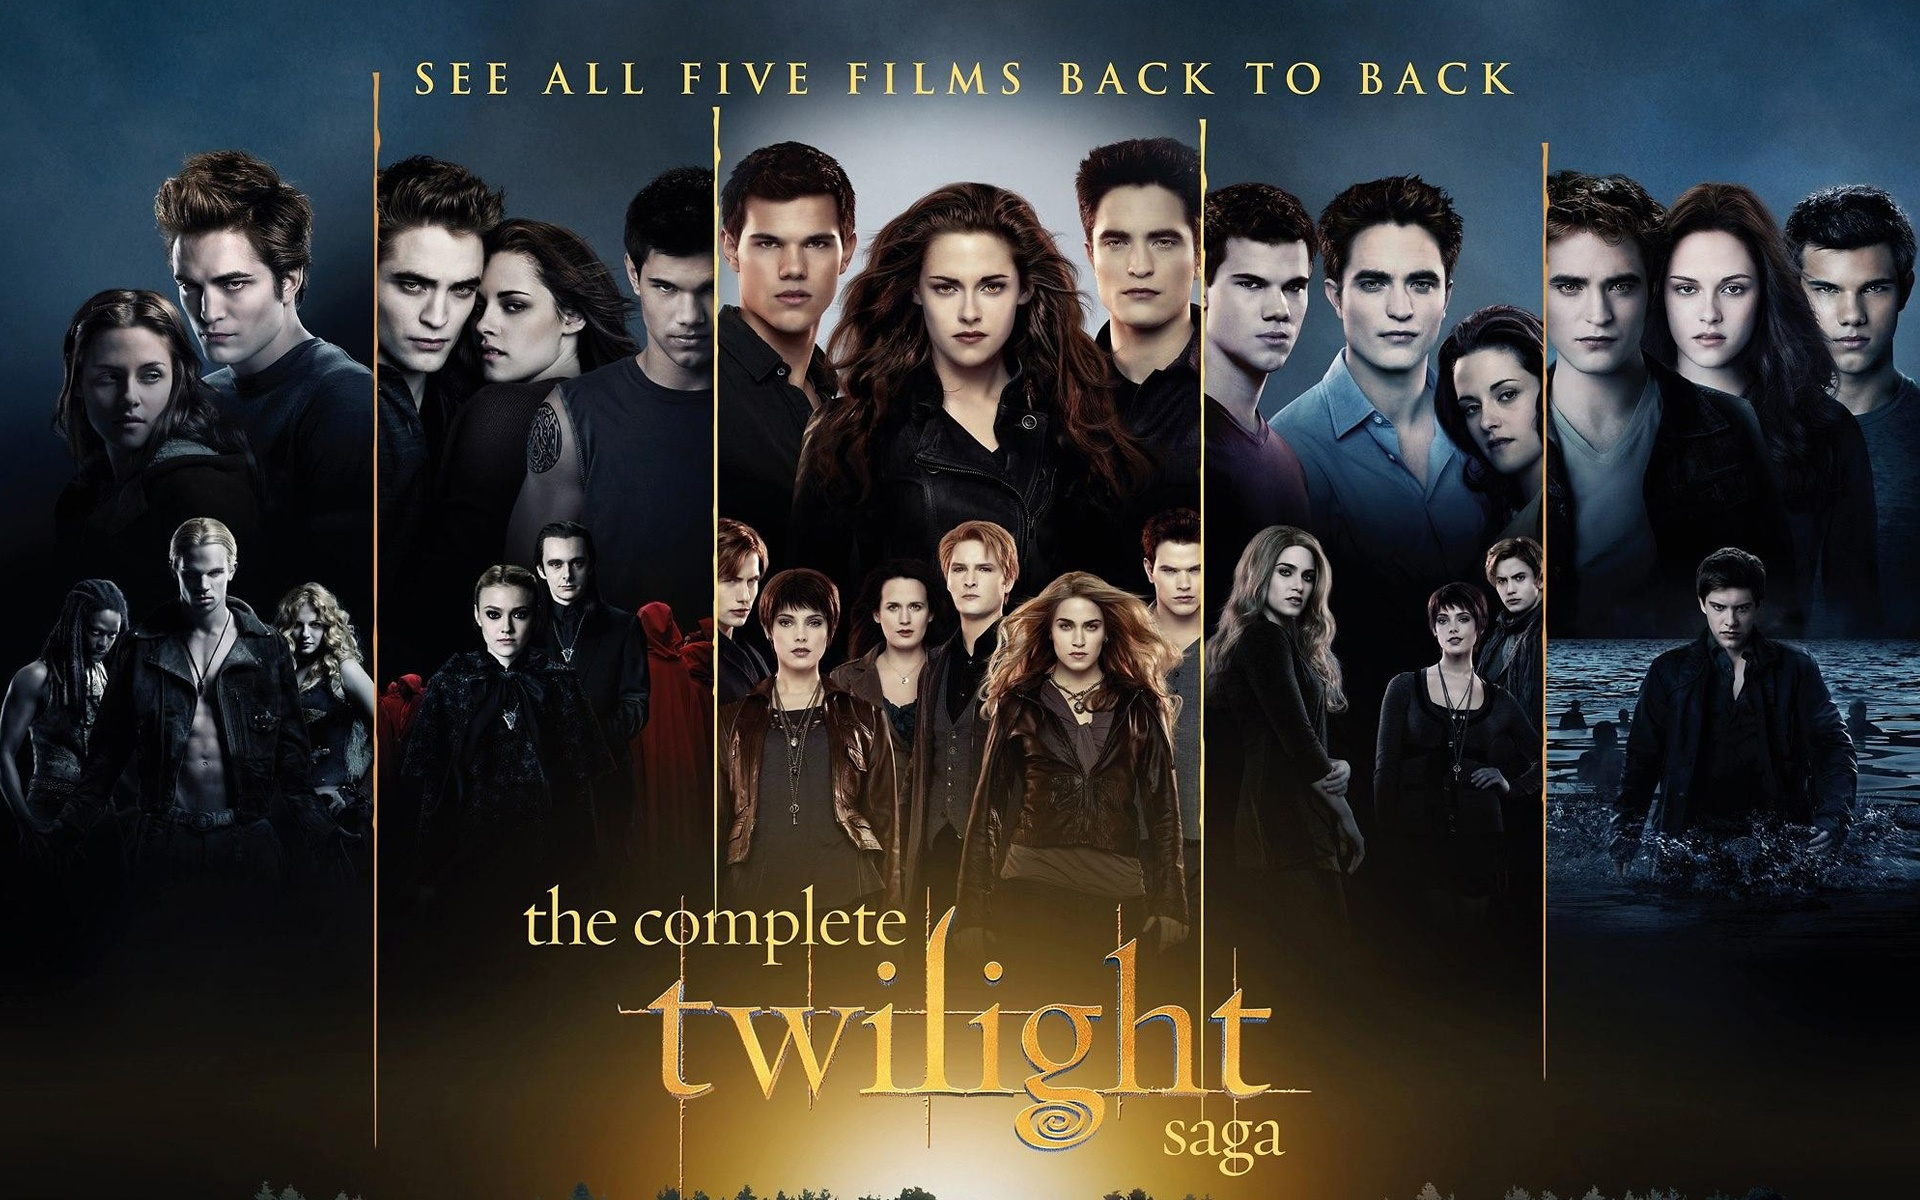 the complete twilight saga wallpapers in jpg format for free download